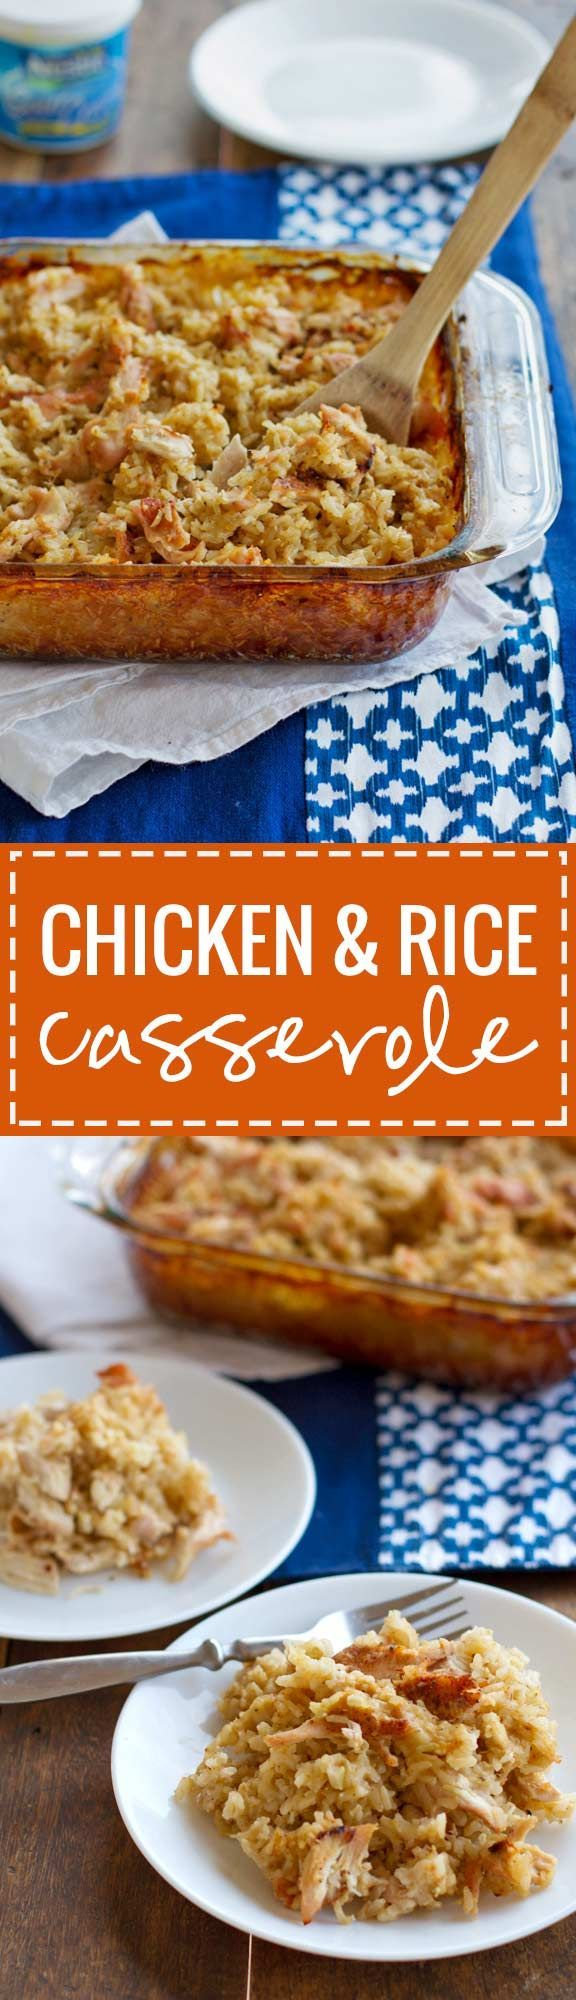 Chicken and Rice Casserole - a simple and satisfying casserole with easy ingredients | pinchofyum.com